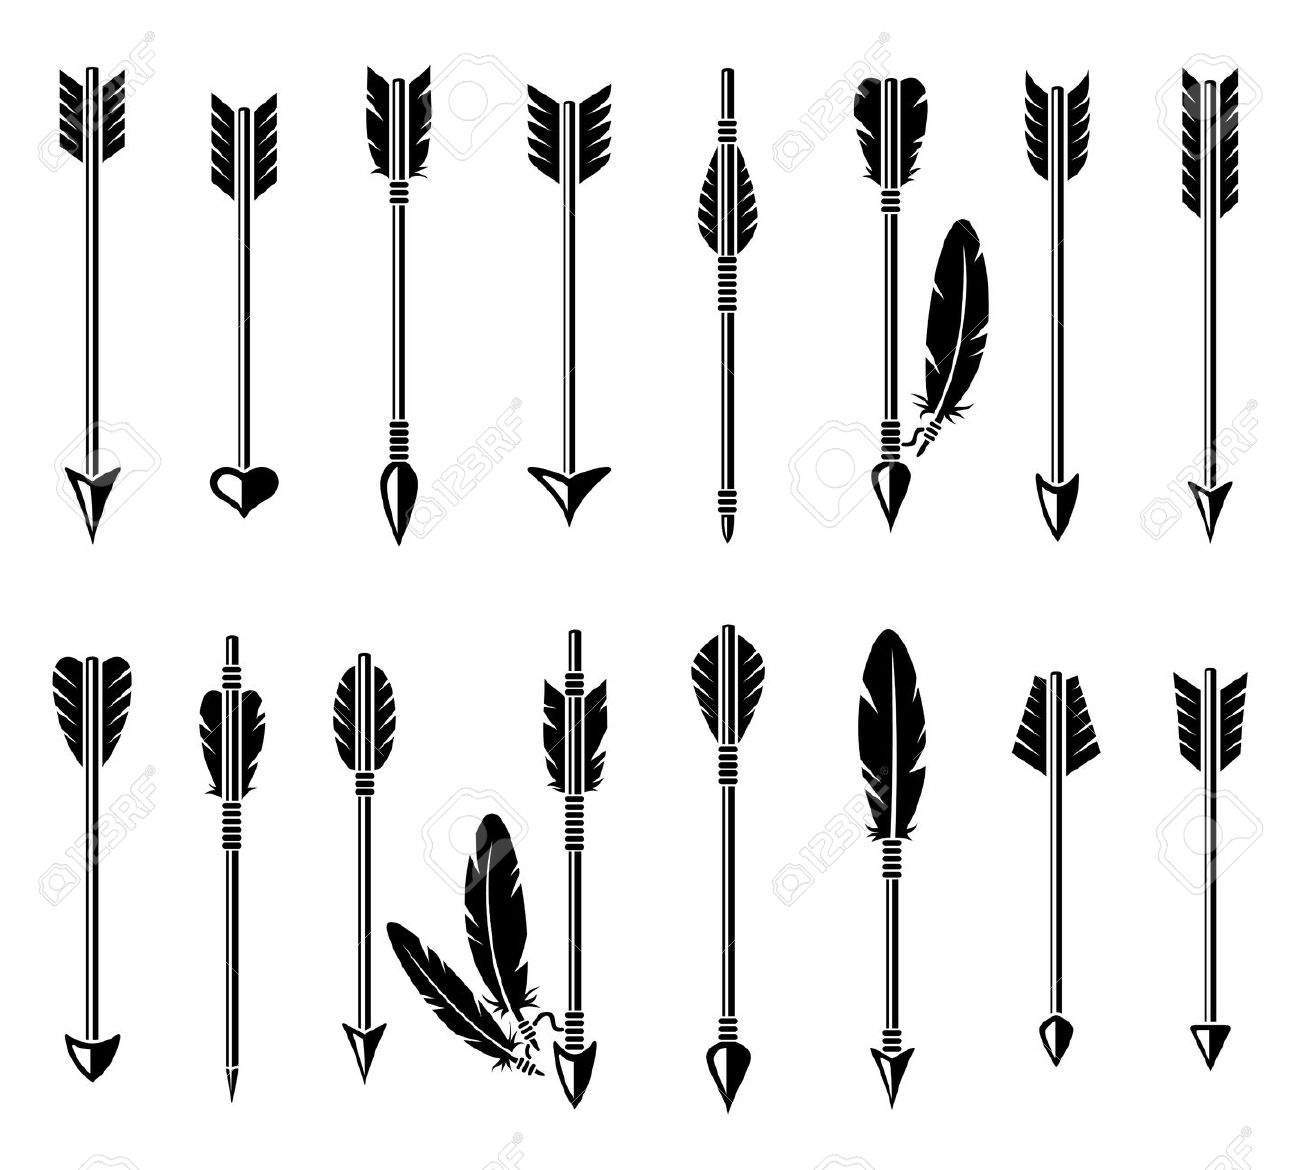 Arrow silhouette clipart clipart royalty free stock 1,154 Medieval Bow And Arrow Stock Vector Illustration And Royalty ... clipart royalty free stock